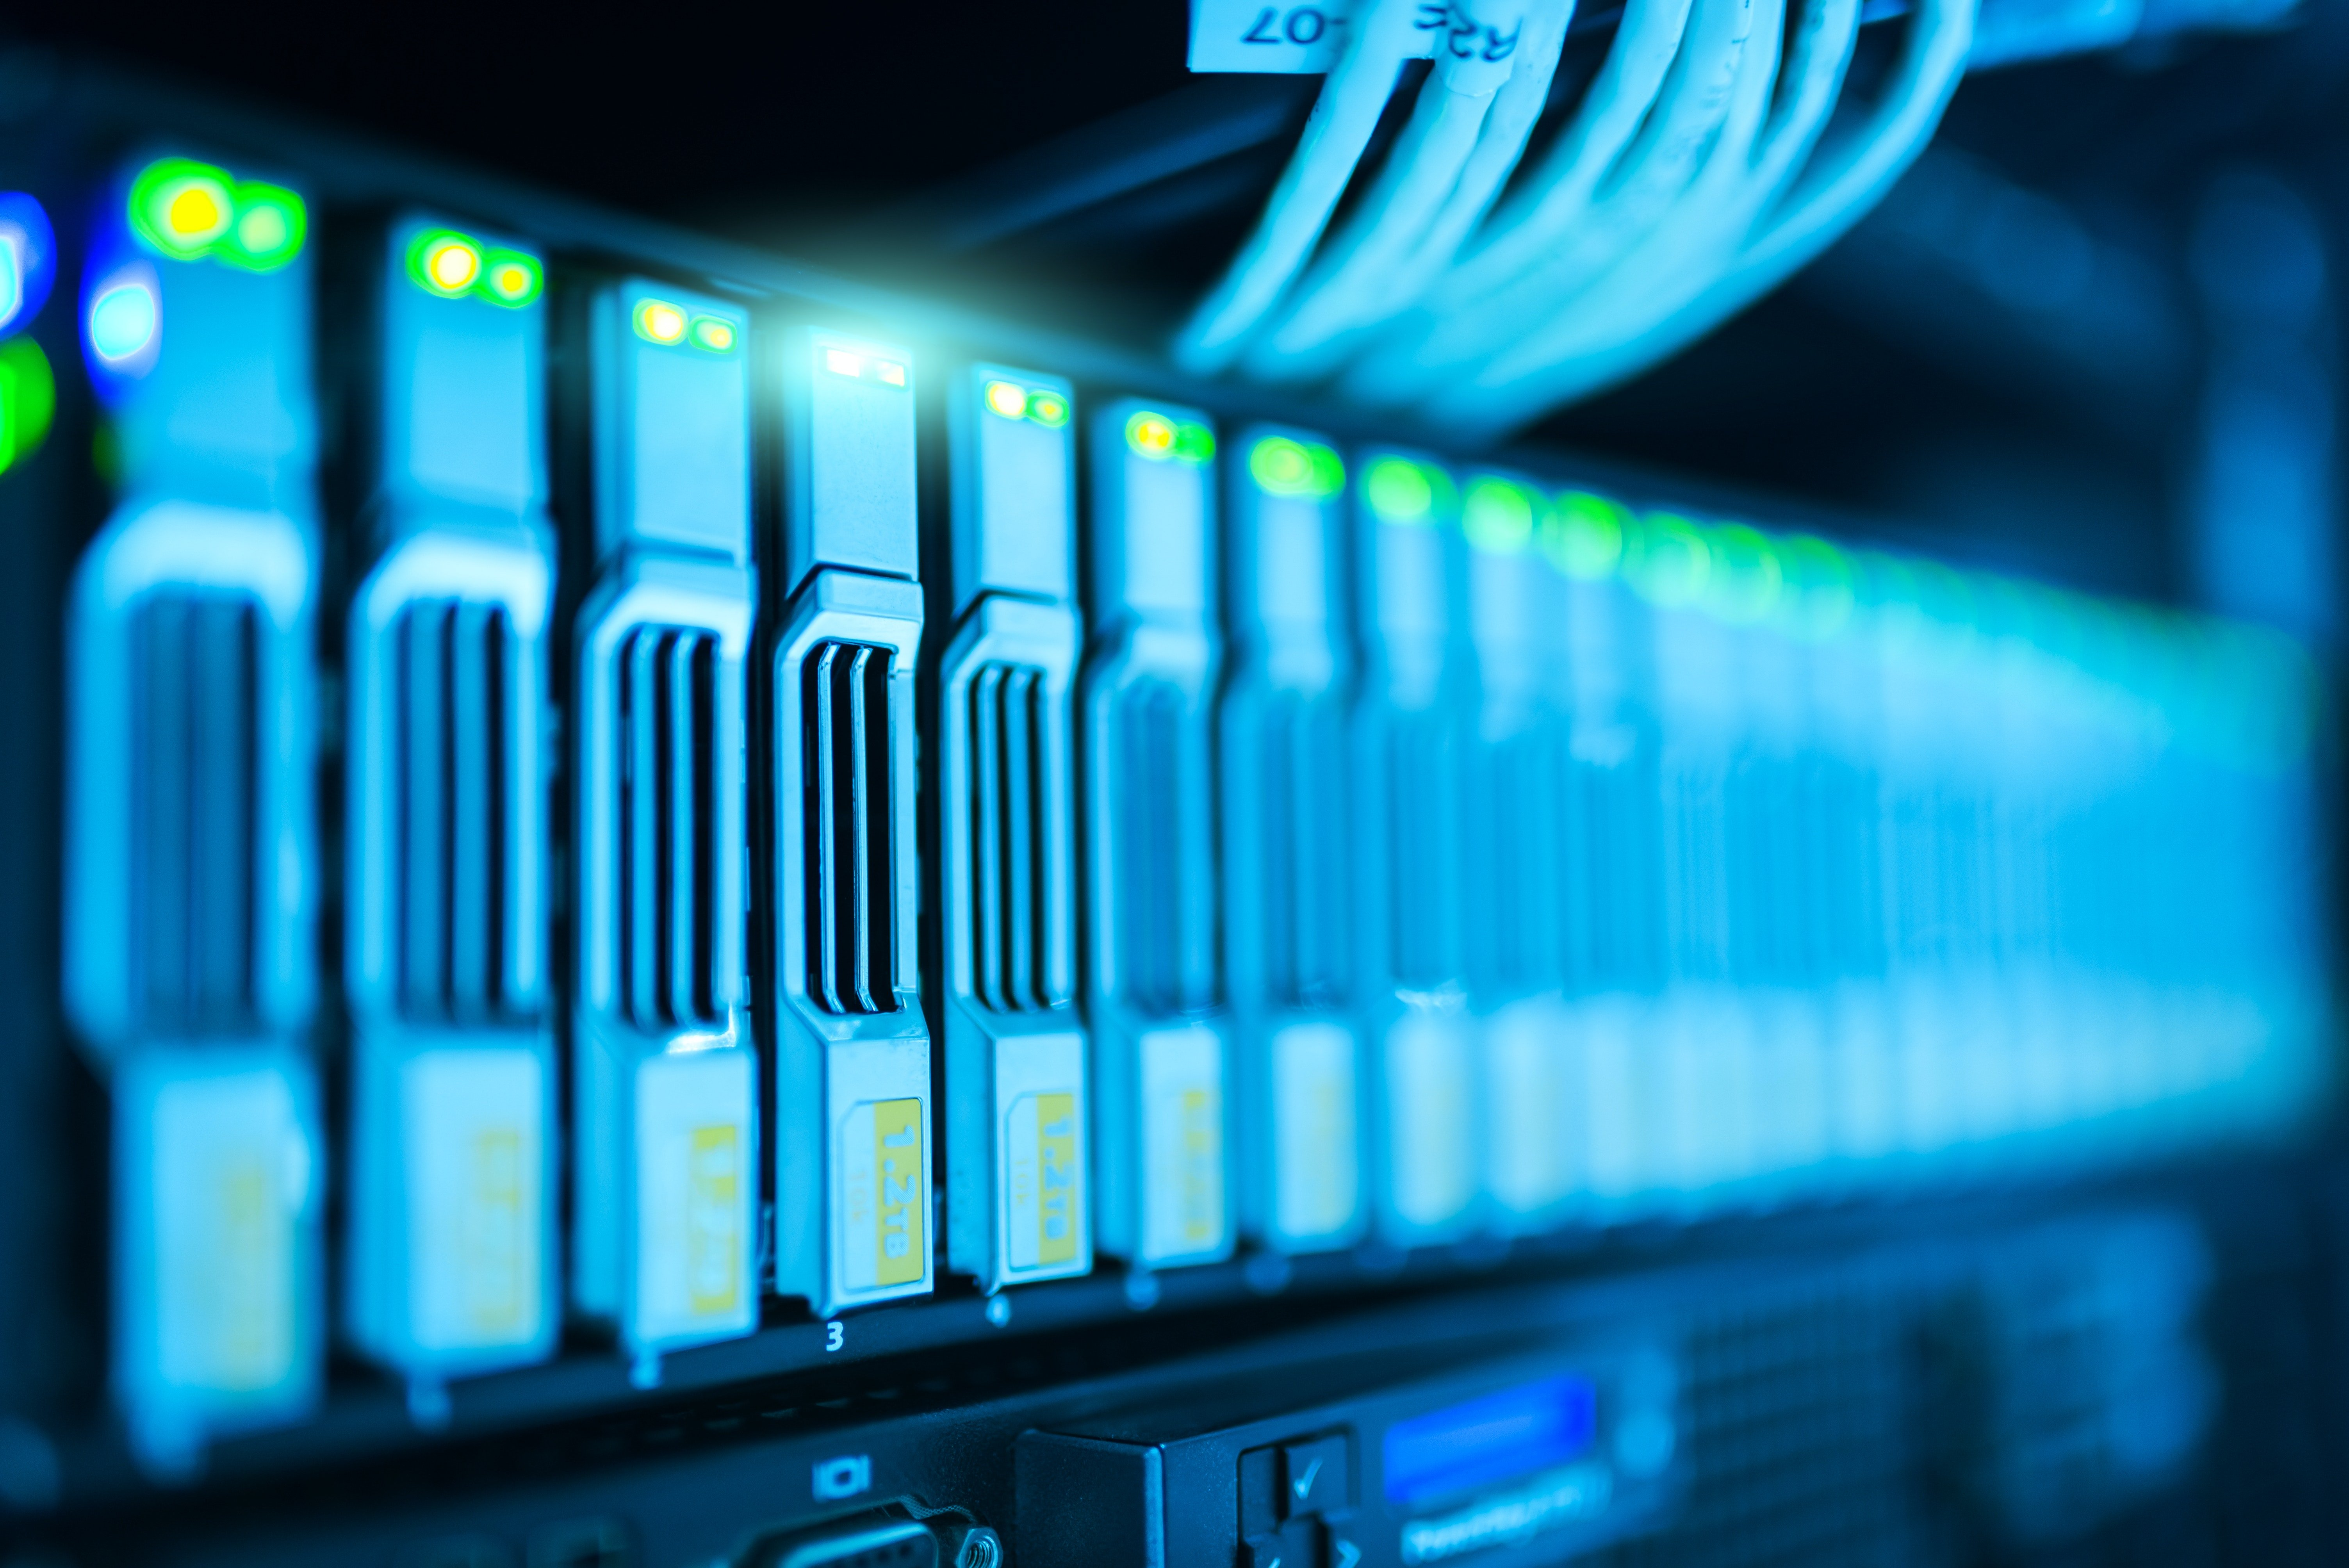 Anti-Exploit Technology is Fundamental for Cloud Workload Security